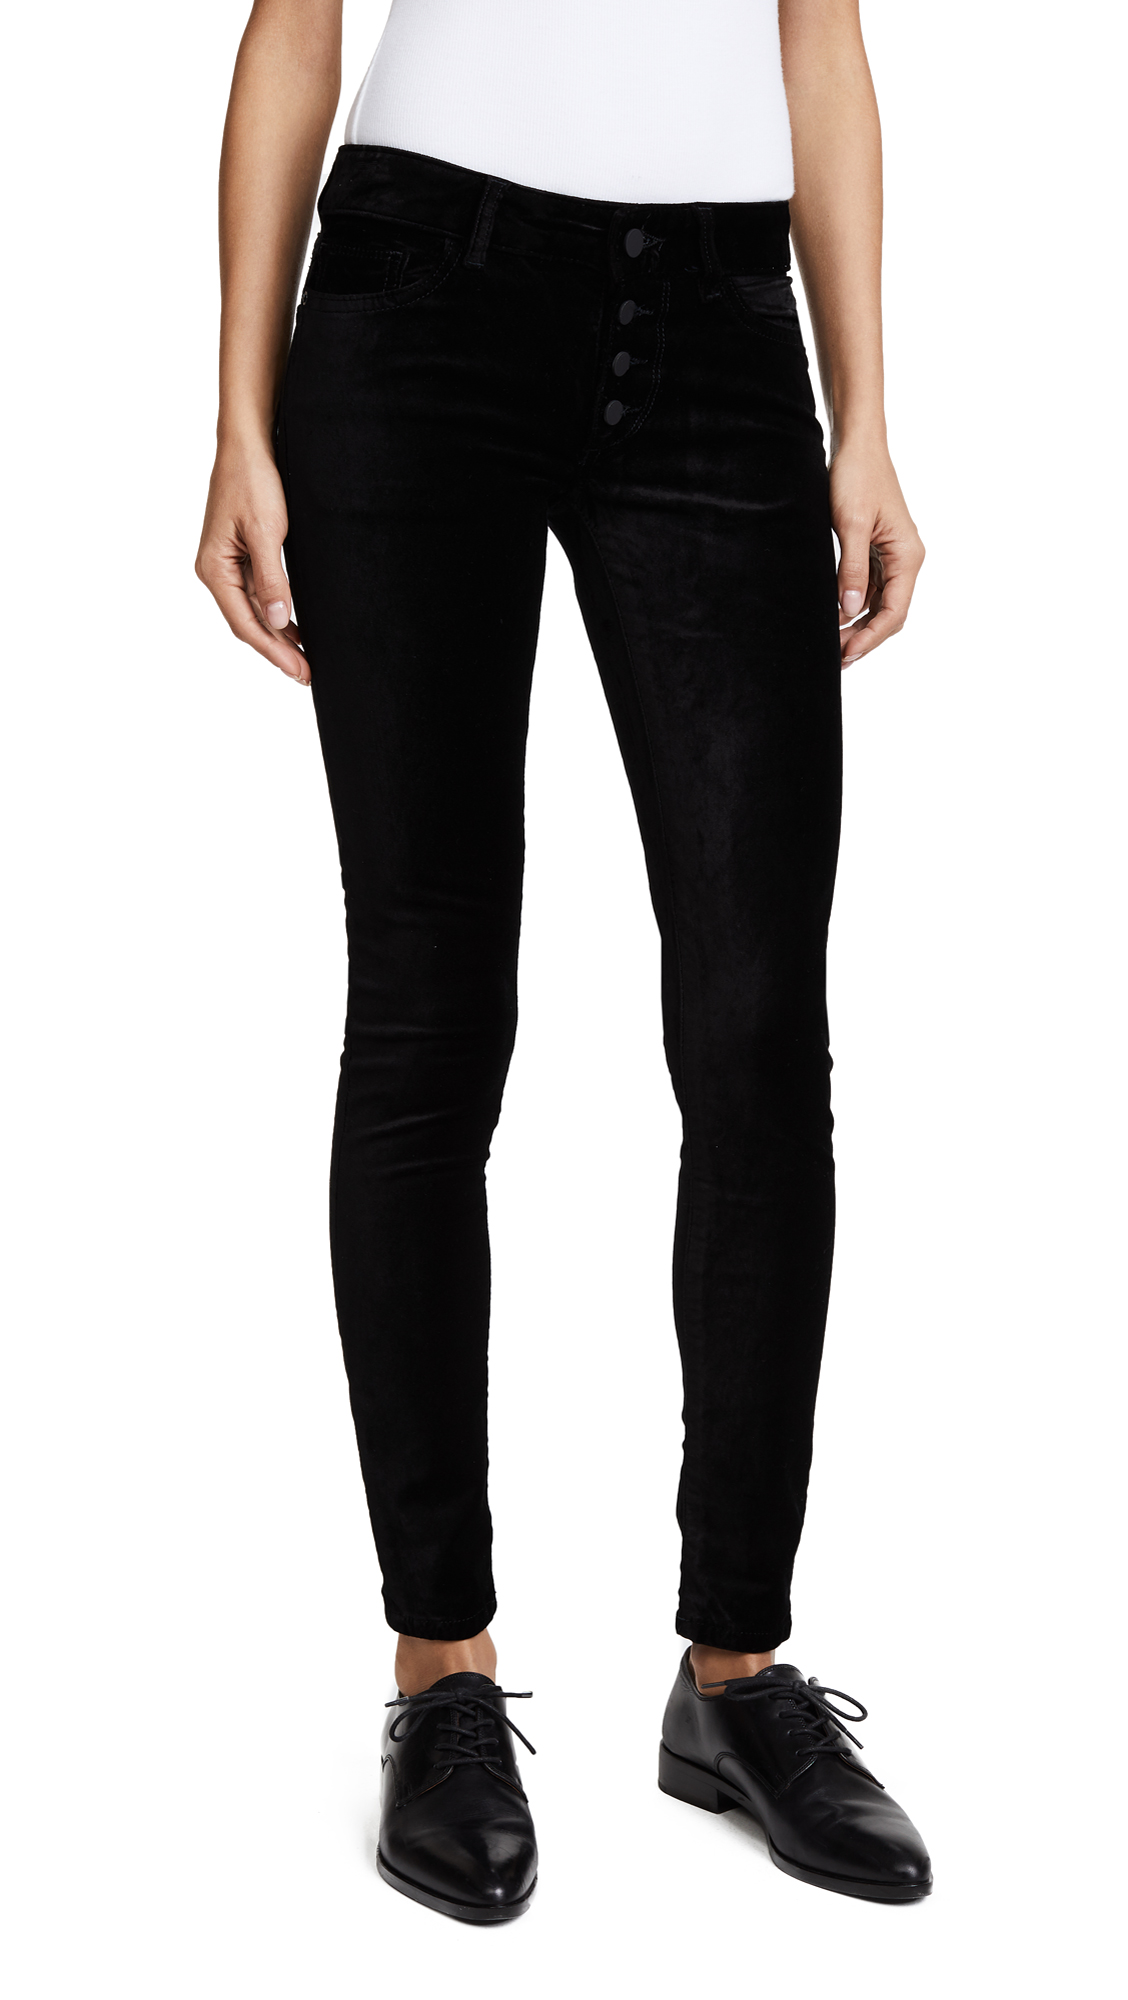 DL1961 Velvet Emma Power Legging Jeans In Jet Black